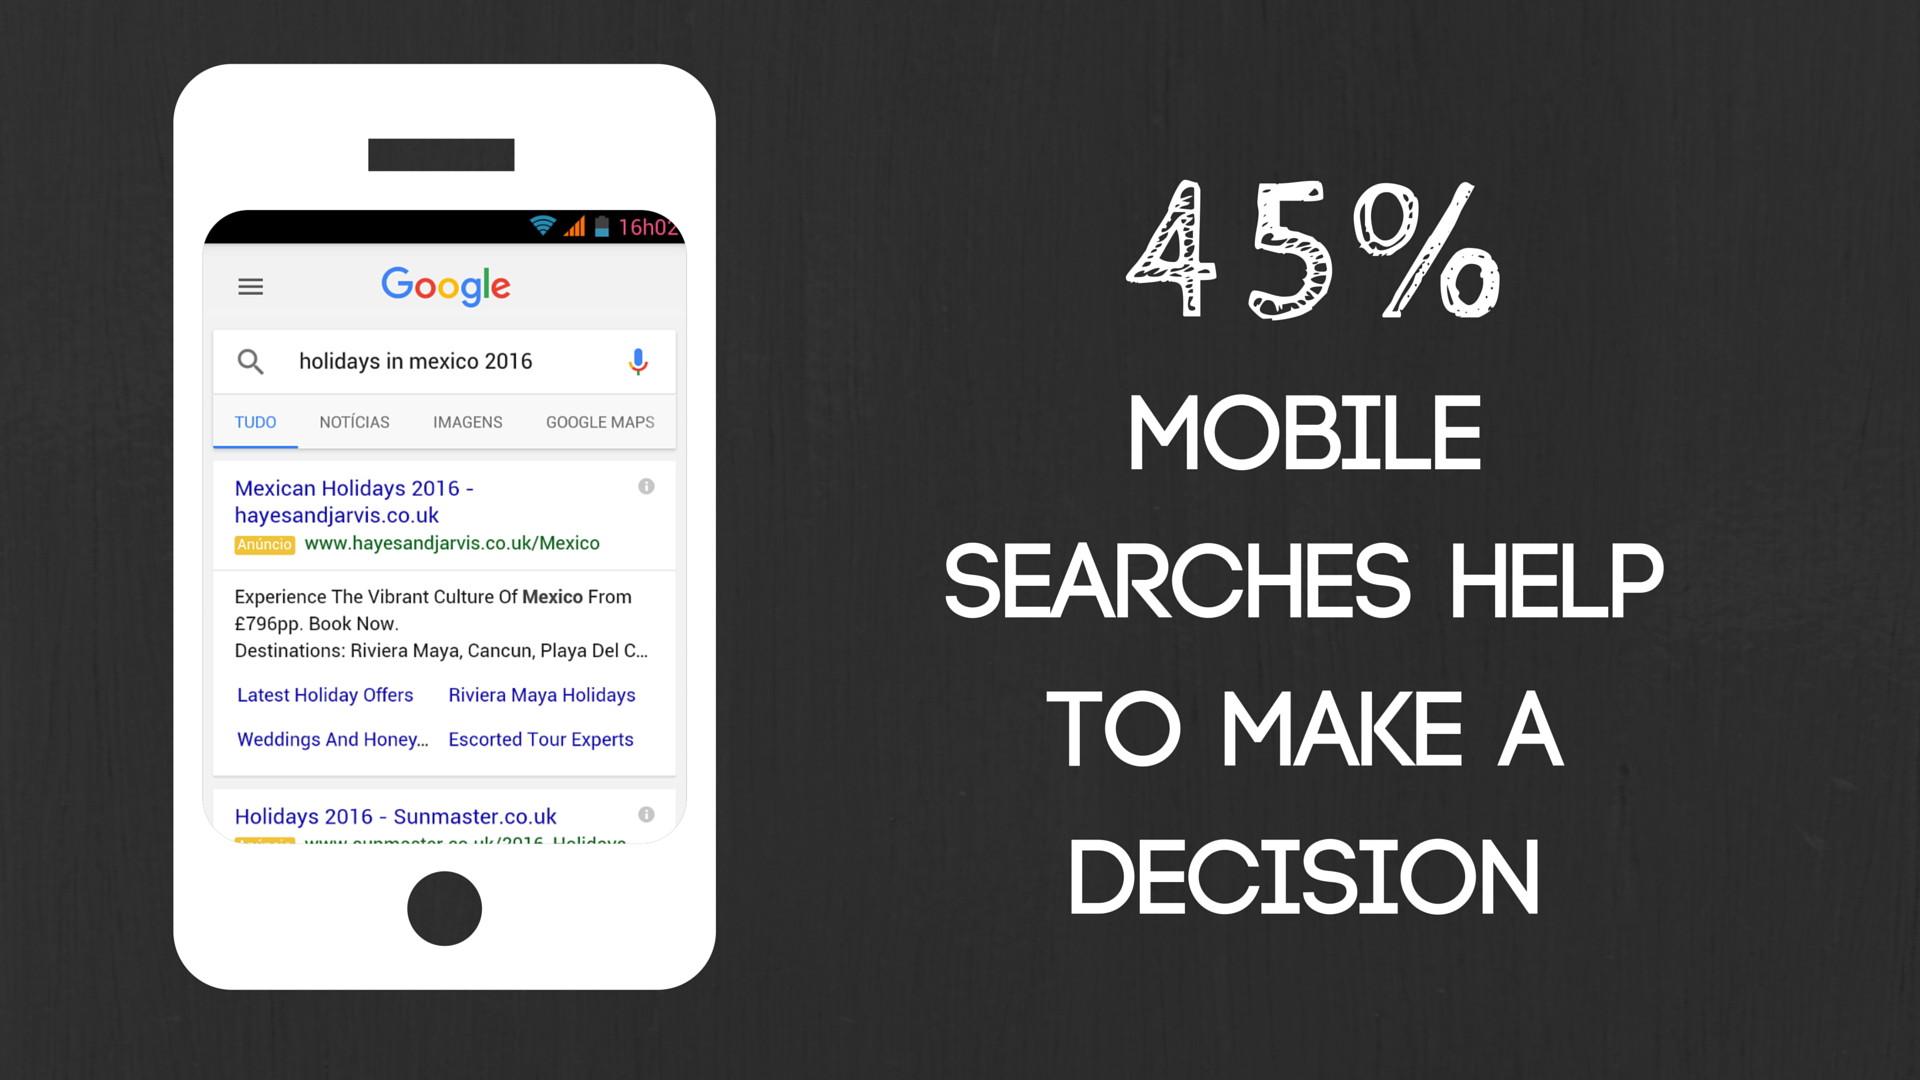 45% of Mobile Searches Help to make a decision